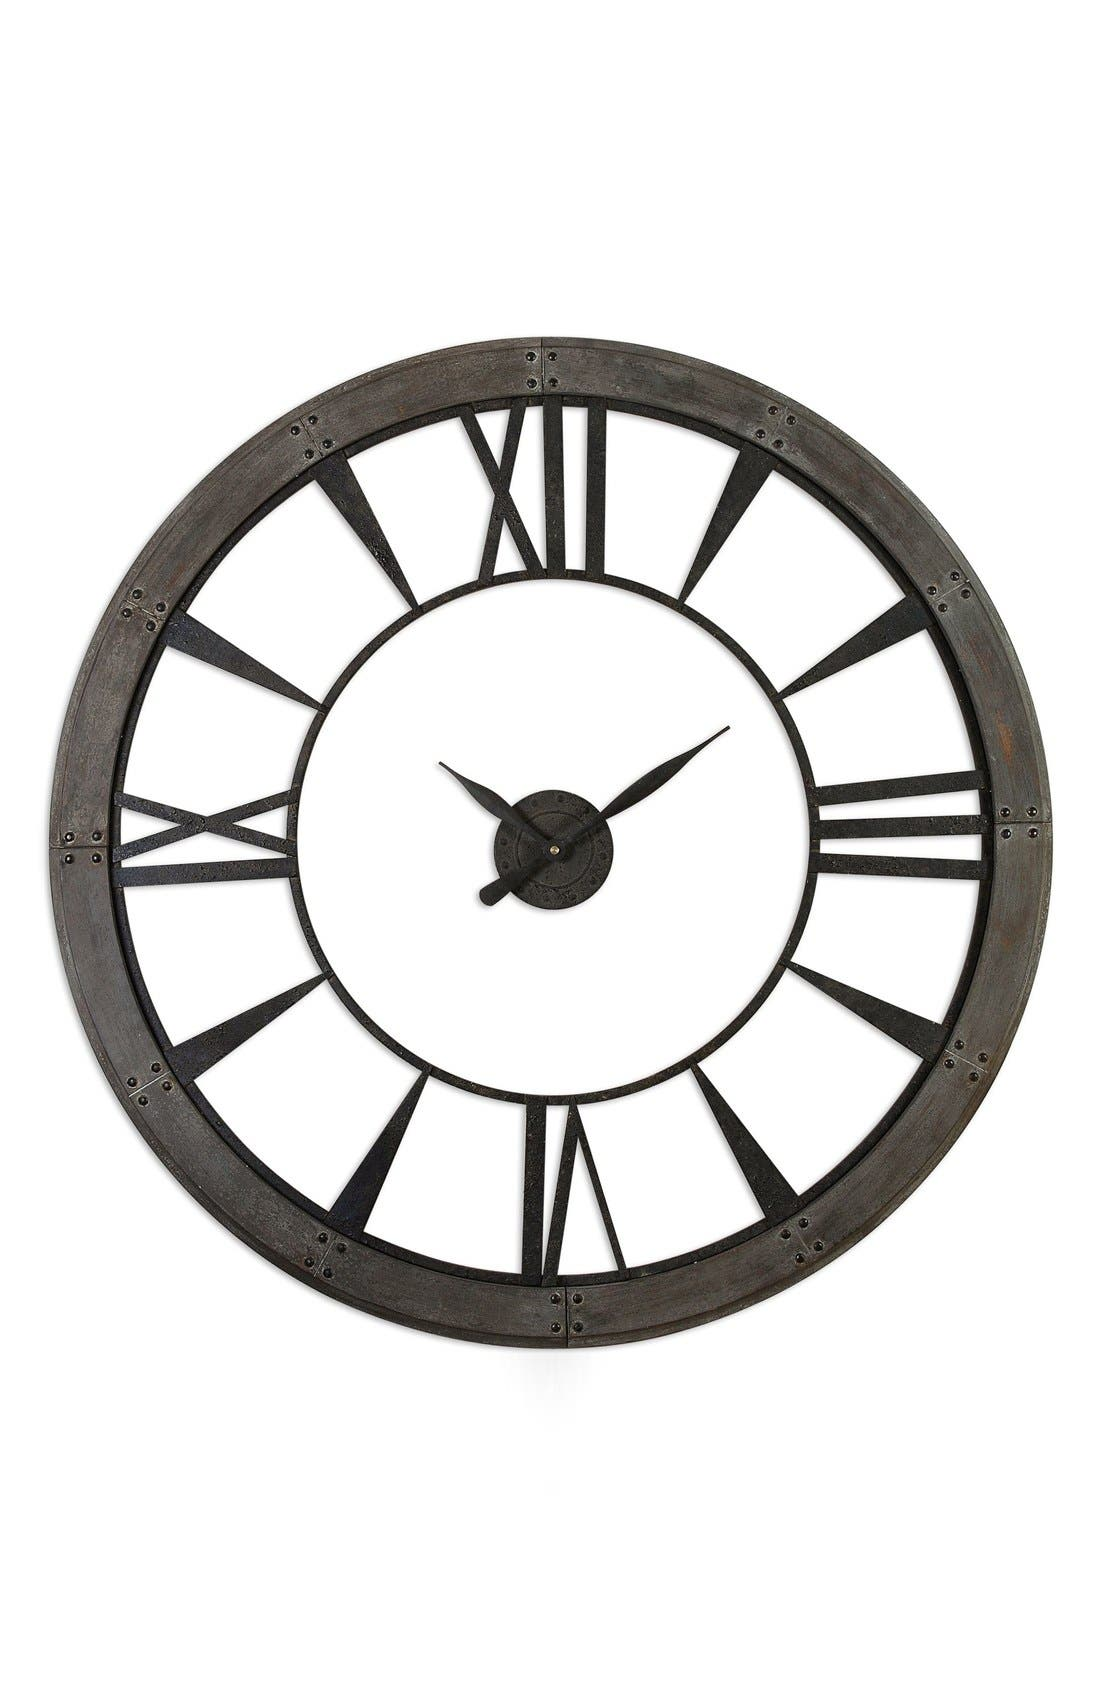 Alternate Image 1 Selected - Uttermost 'Ronan' Wall Clock